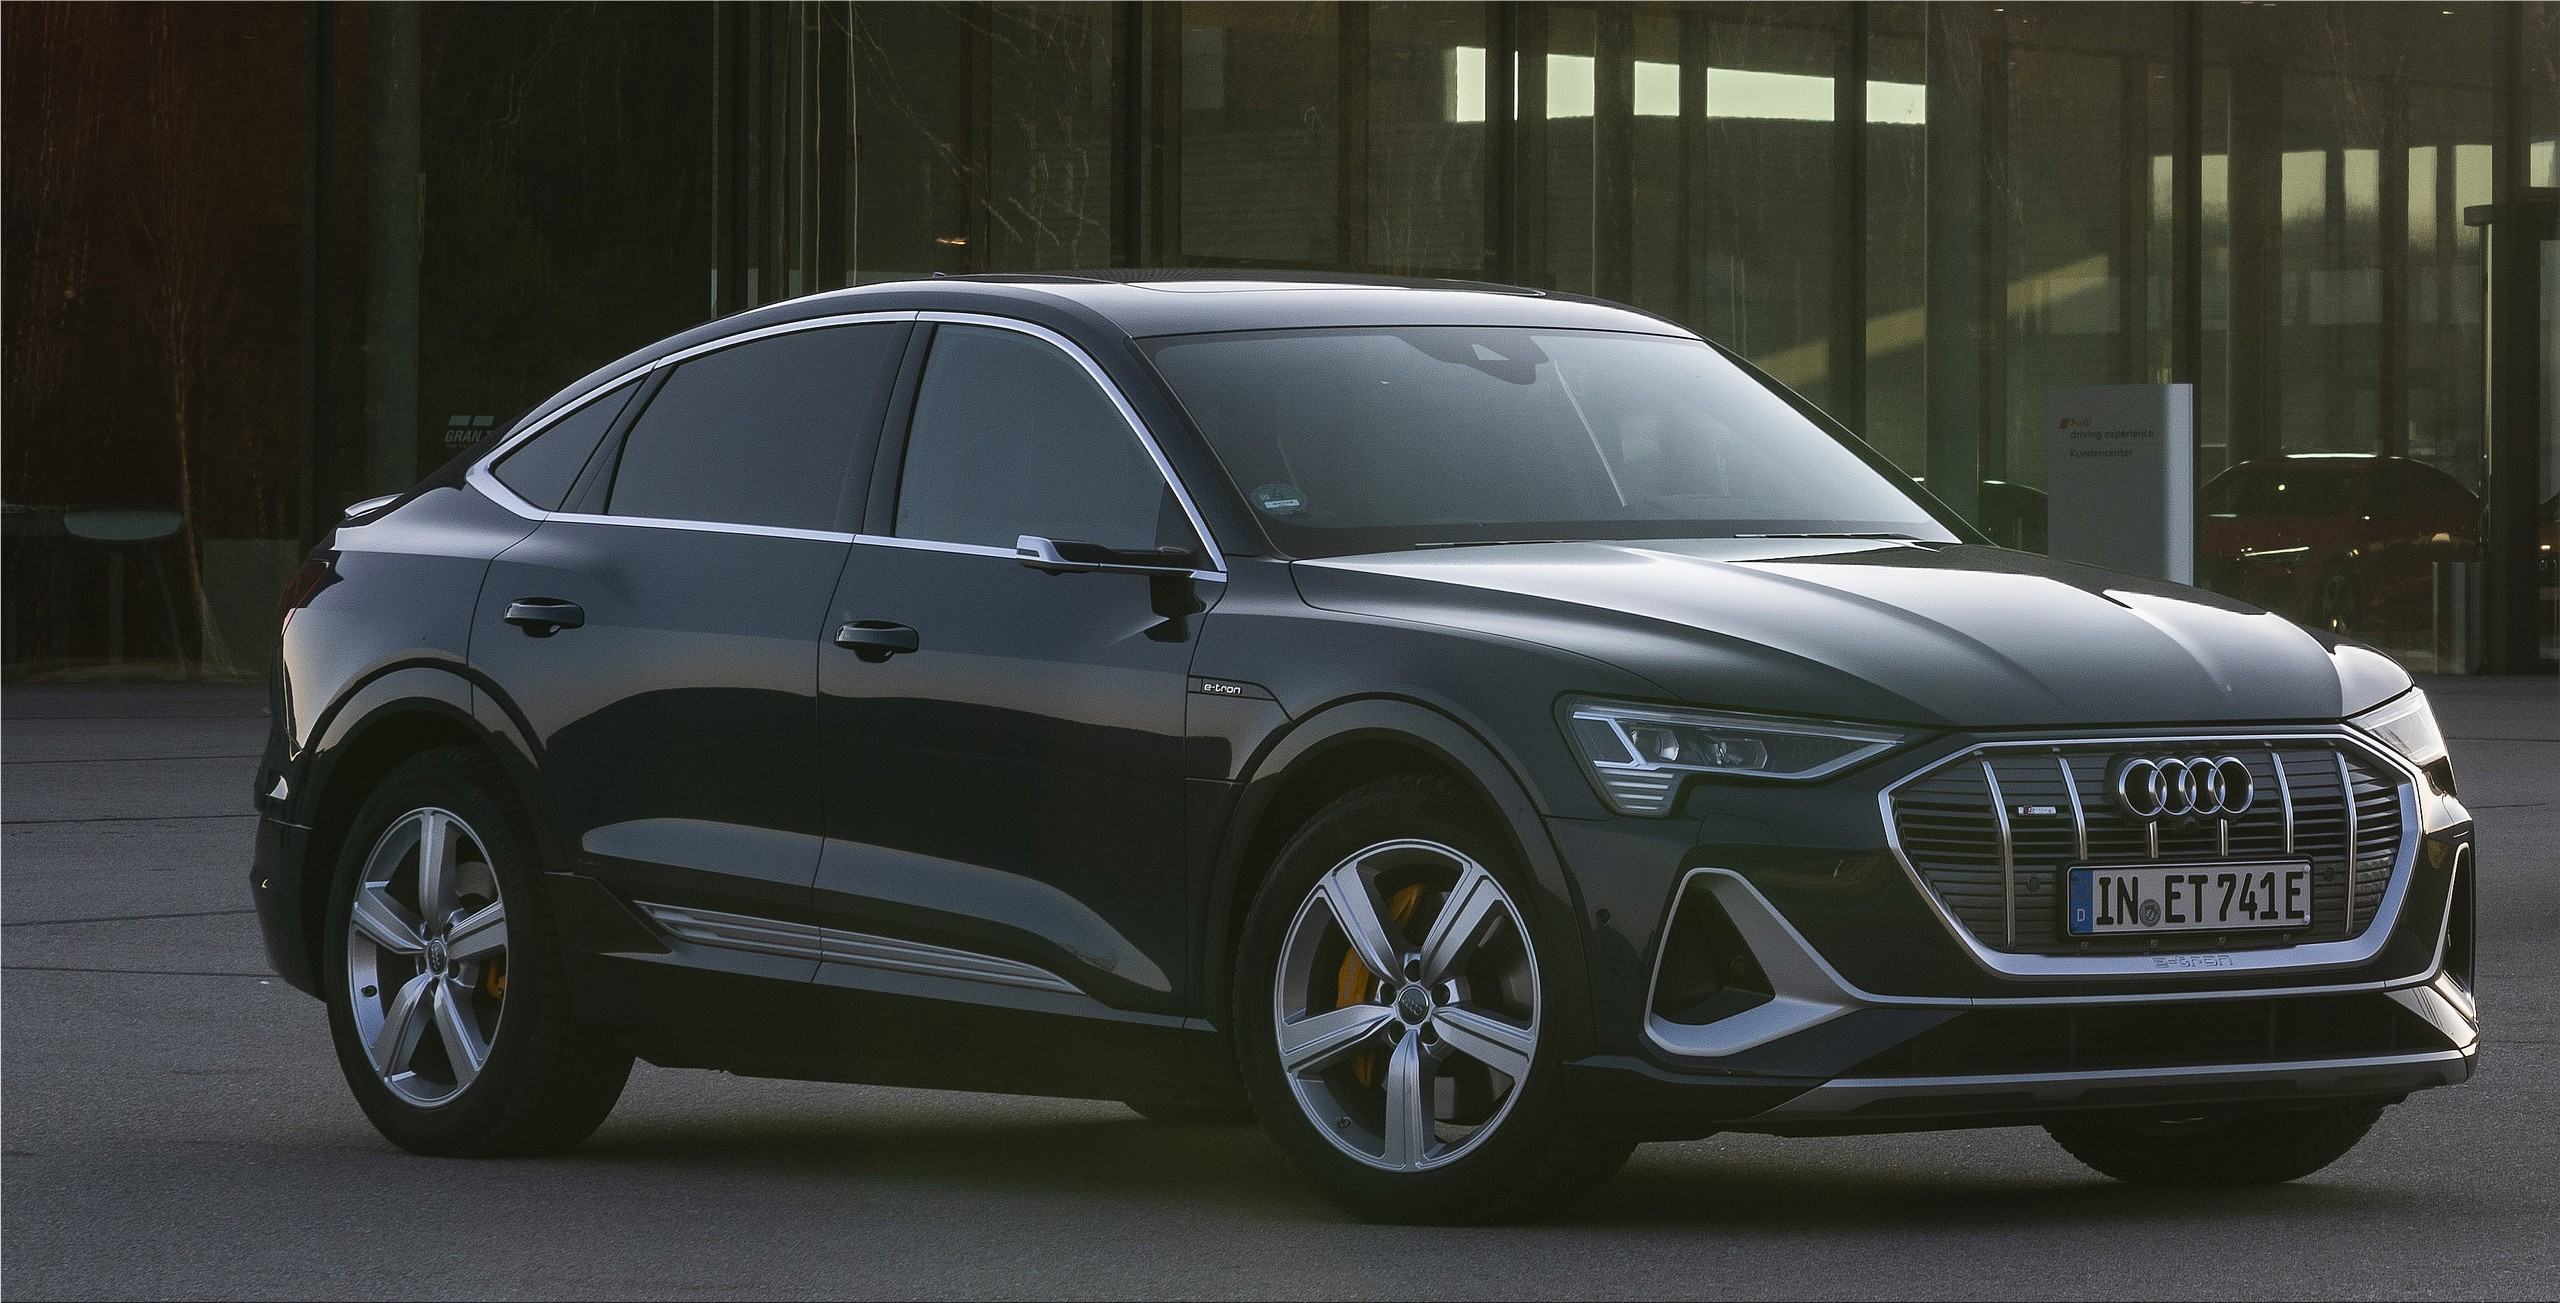 Audi Wants To Invest 10 Billion Euros In Electric Cars E V News Electric Hunter